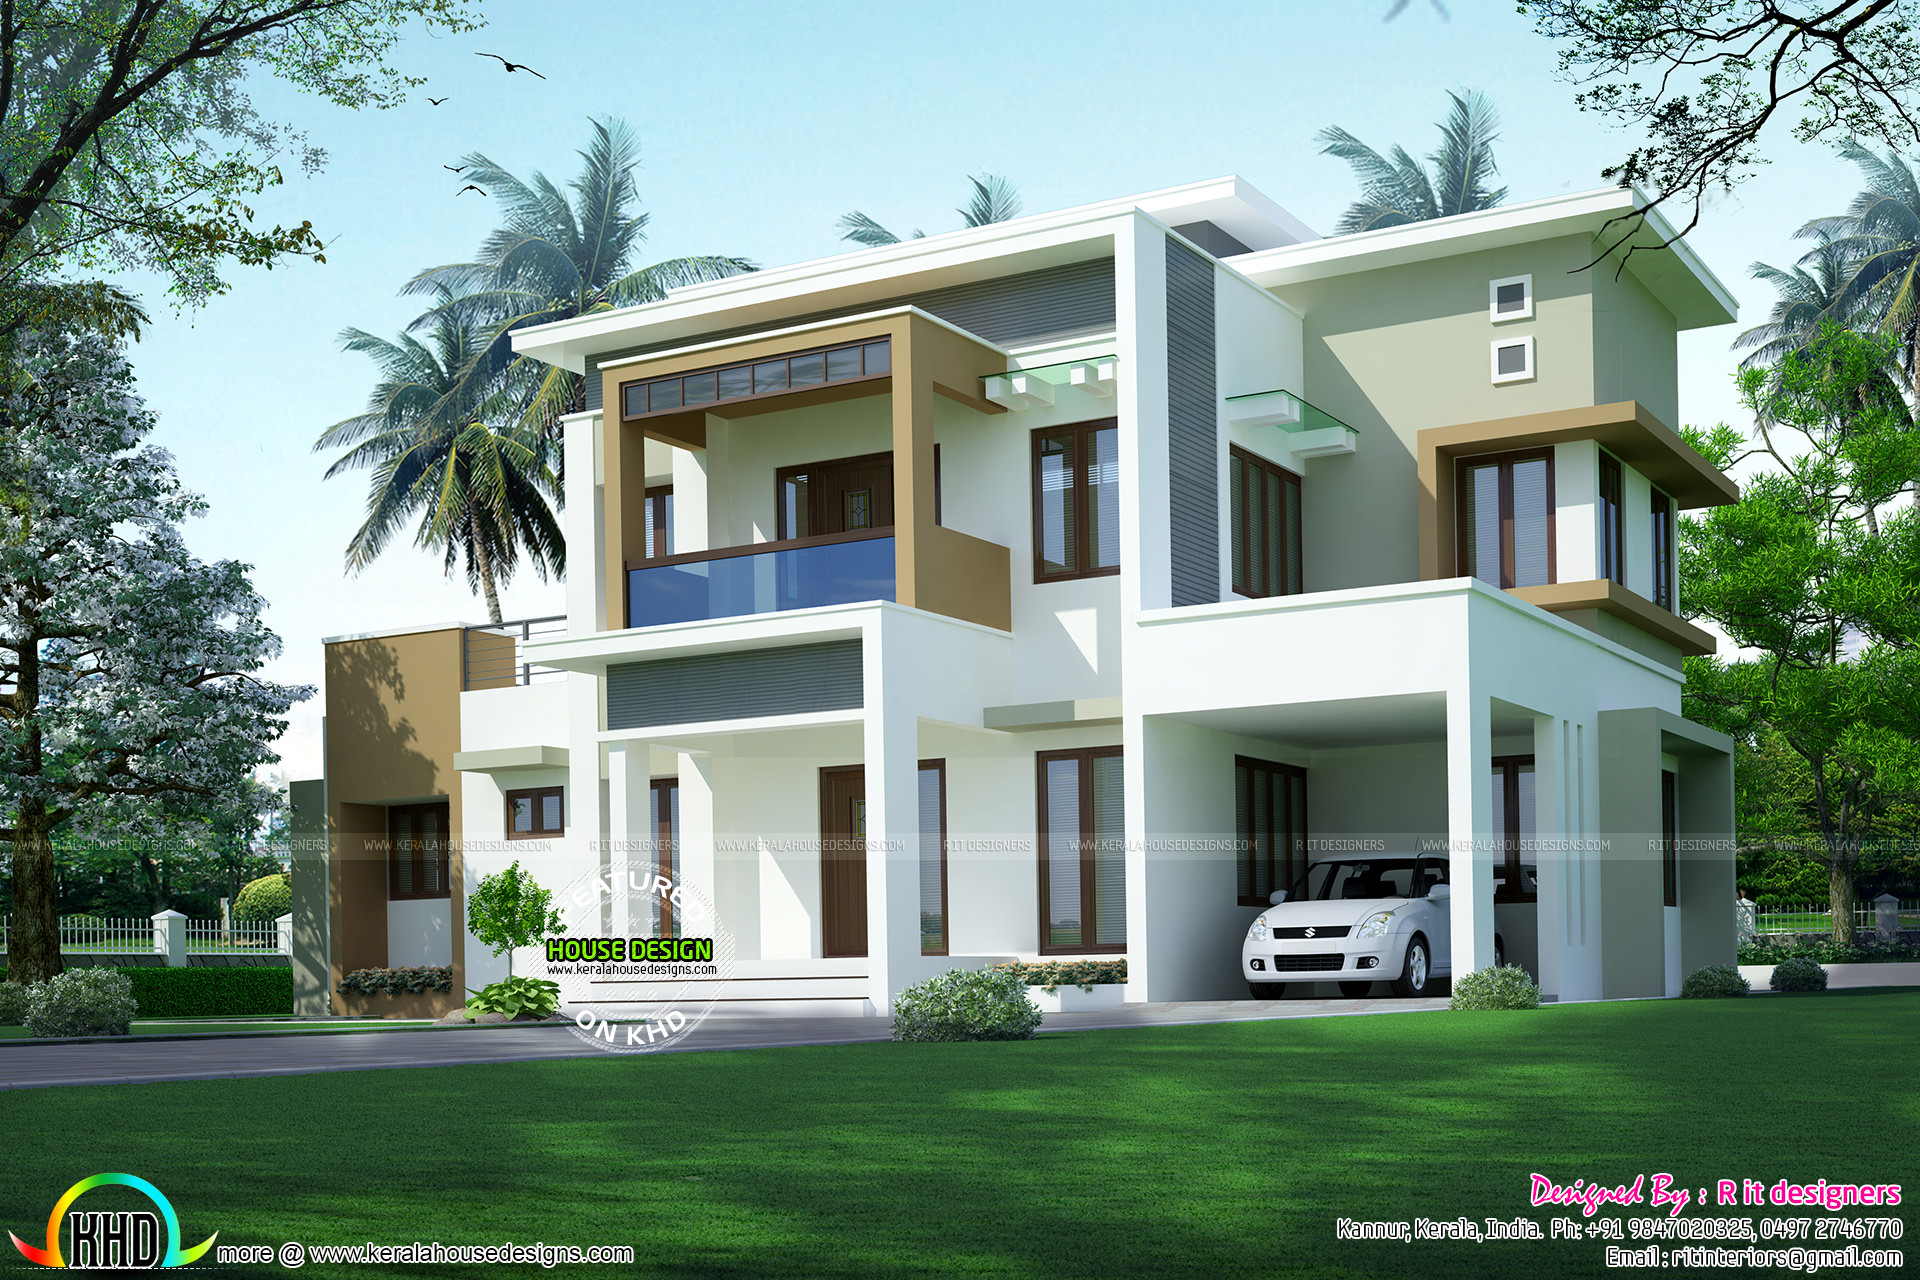 Architecture Design Kerala Model simple architecture design kerala 3 bhk sloping roof home c to